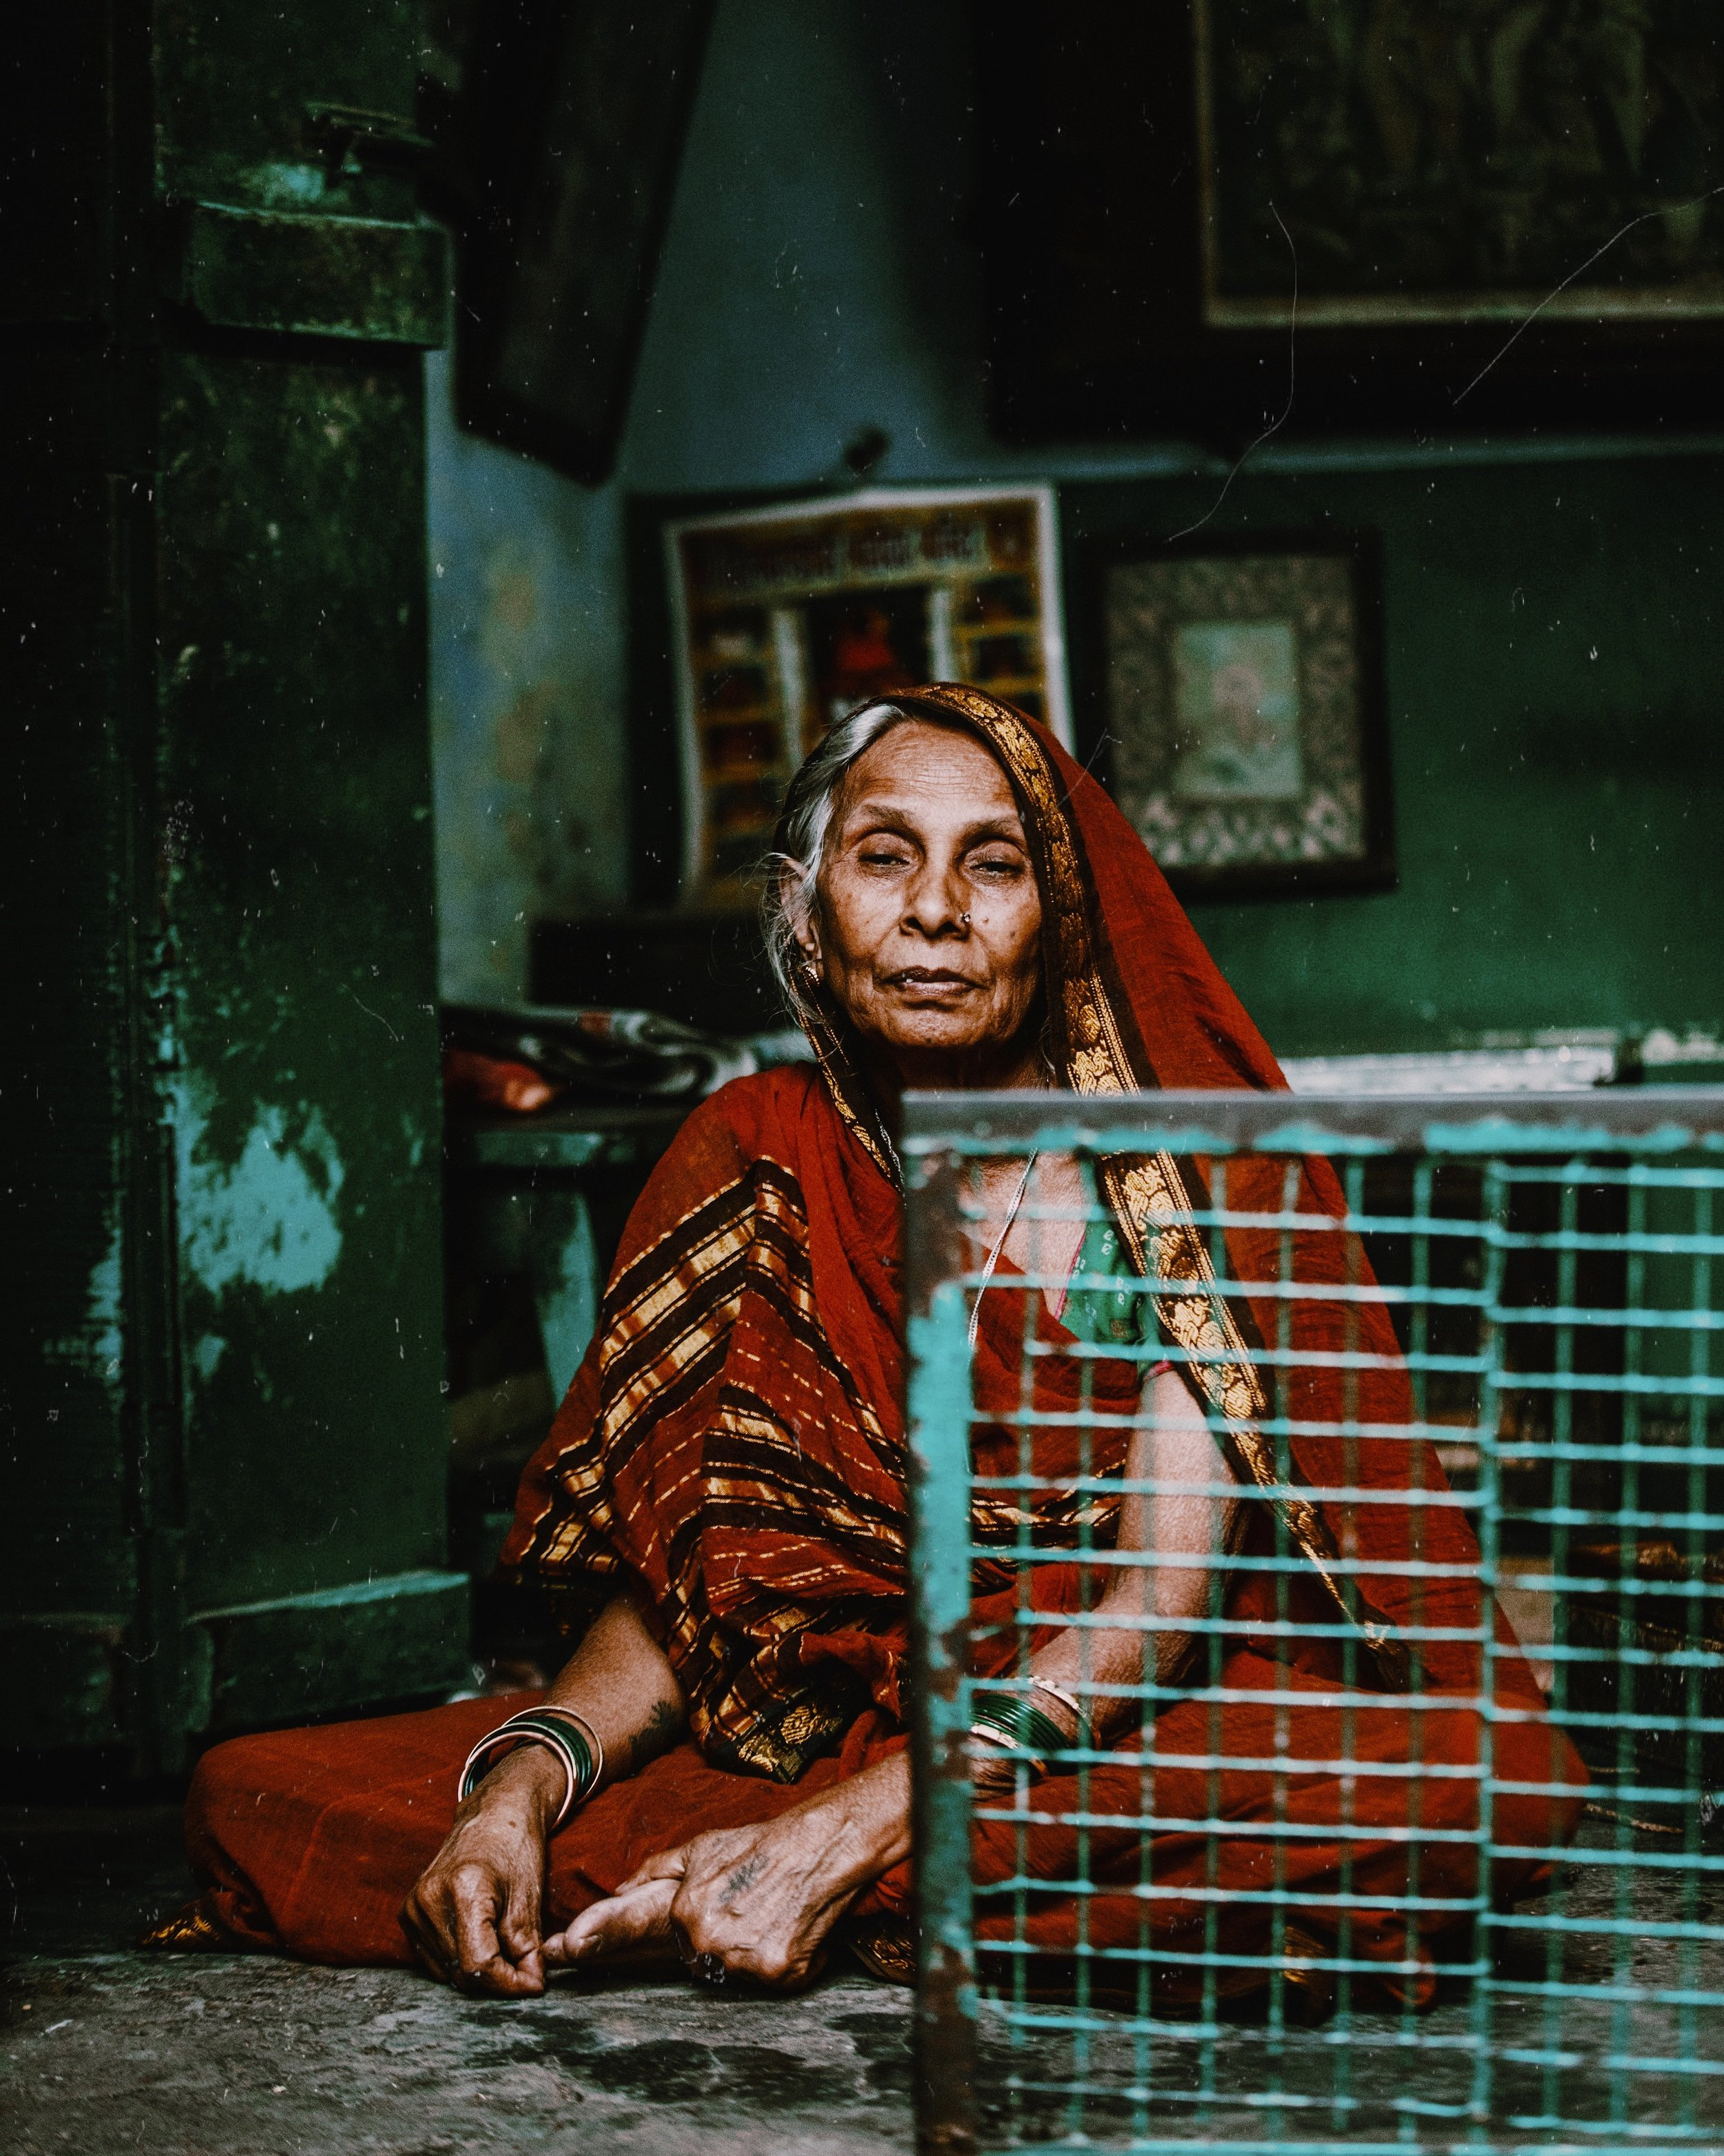 - A woman sits in a beaten down shop in the alleyways of Varanasi, India.